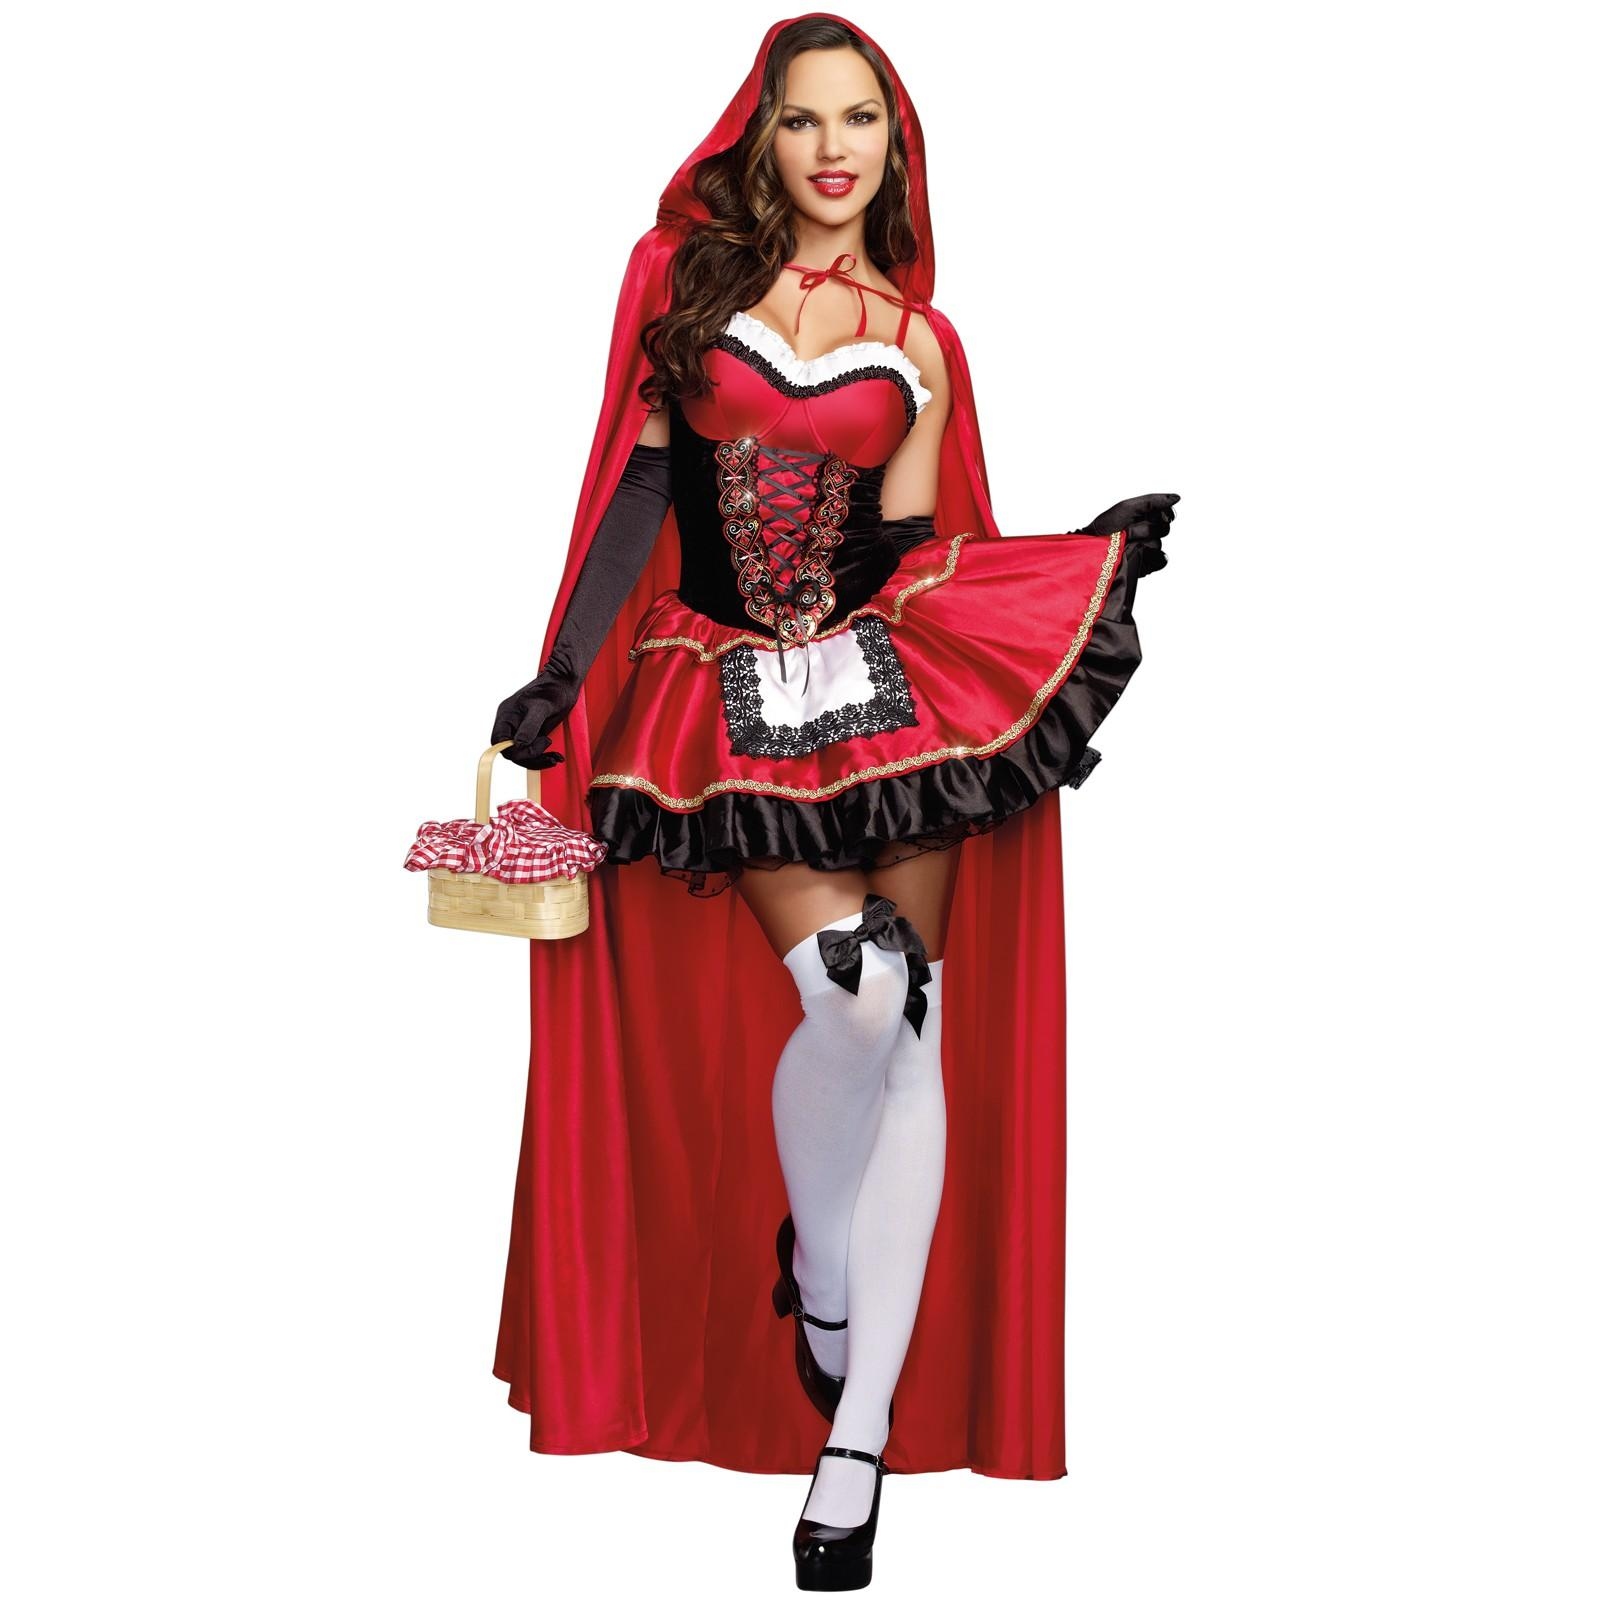 Sexy Little Red Riding Hood Dress - Medium (6-10)